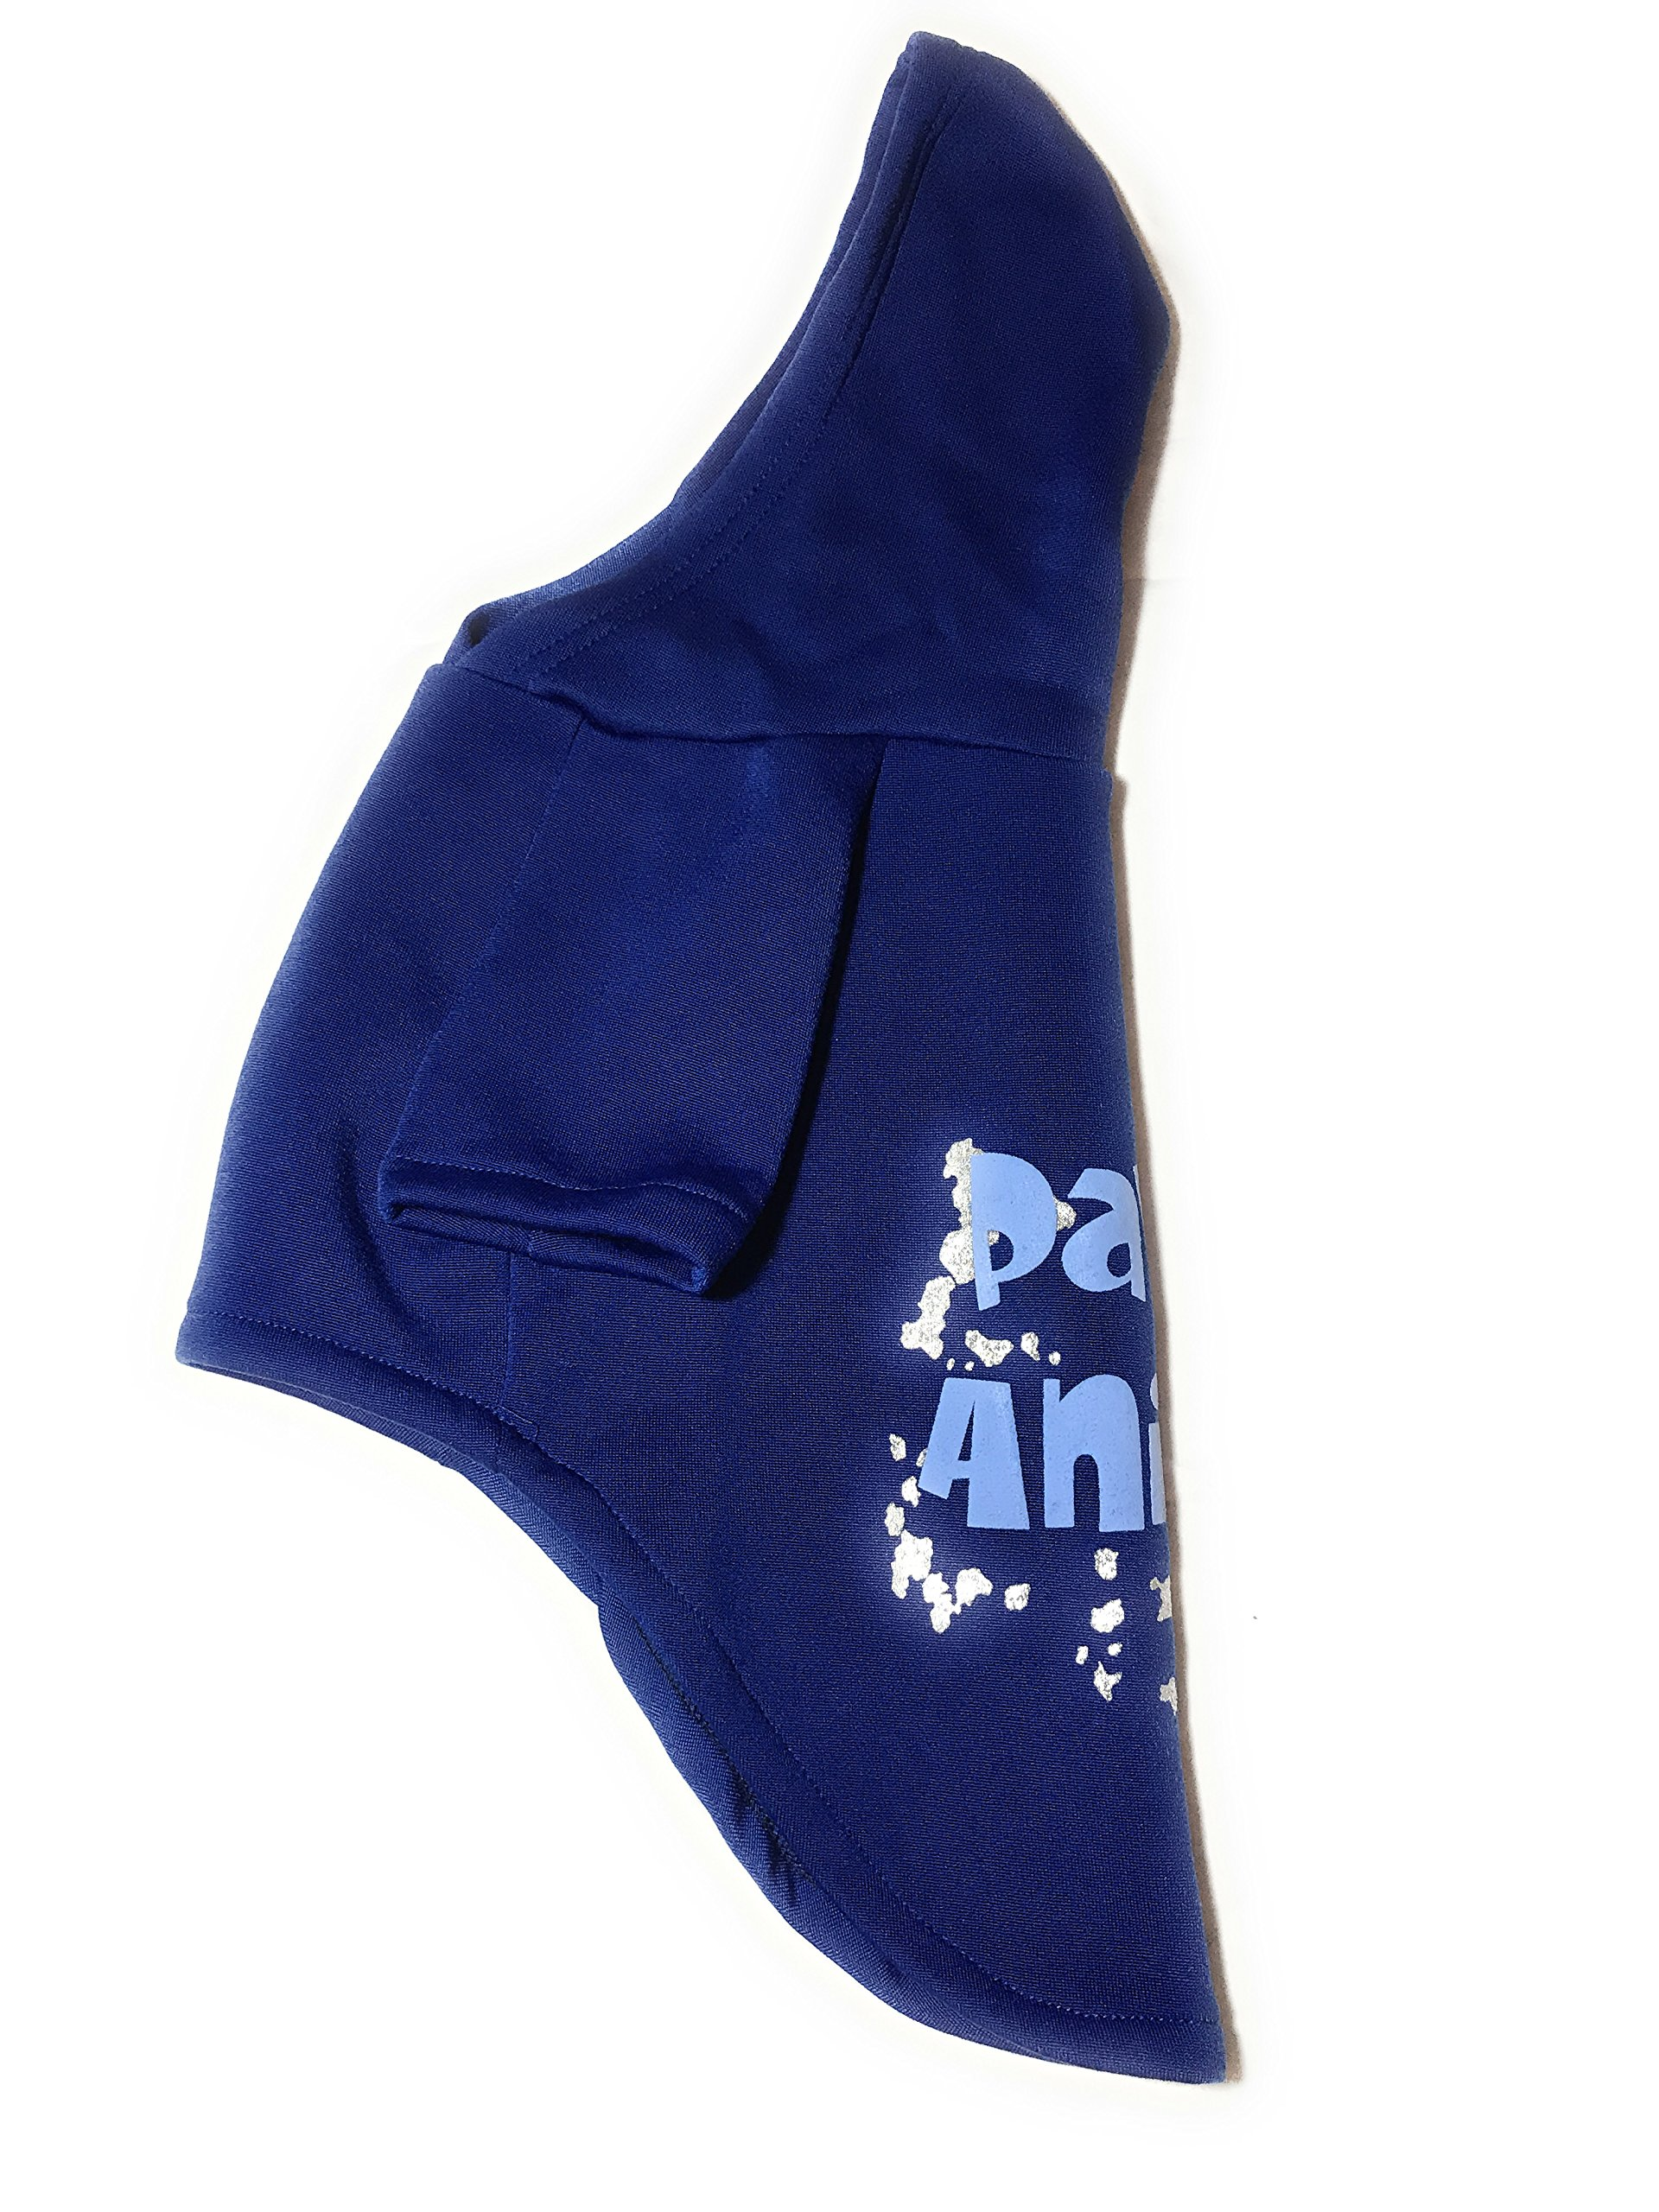 Dog or Puppy Sweater Hoodie ´Party Animal´ Blue and Silver for Large or Extra Large Pets XL size/ Extra Large Fashion and Funny Hoodie Shirt Petmont Brand For Boys Or Girls by Petmont (Image #3)